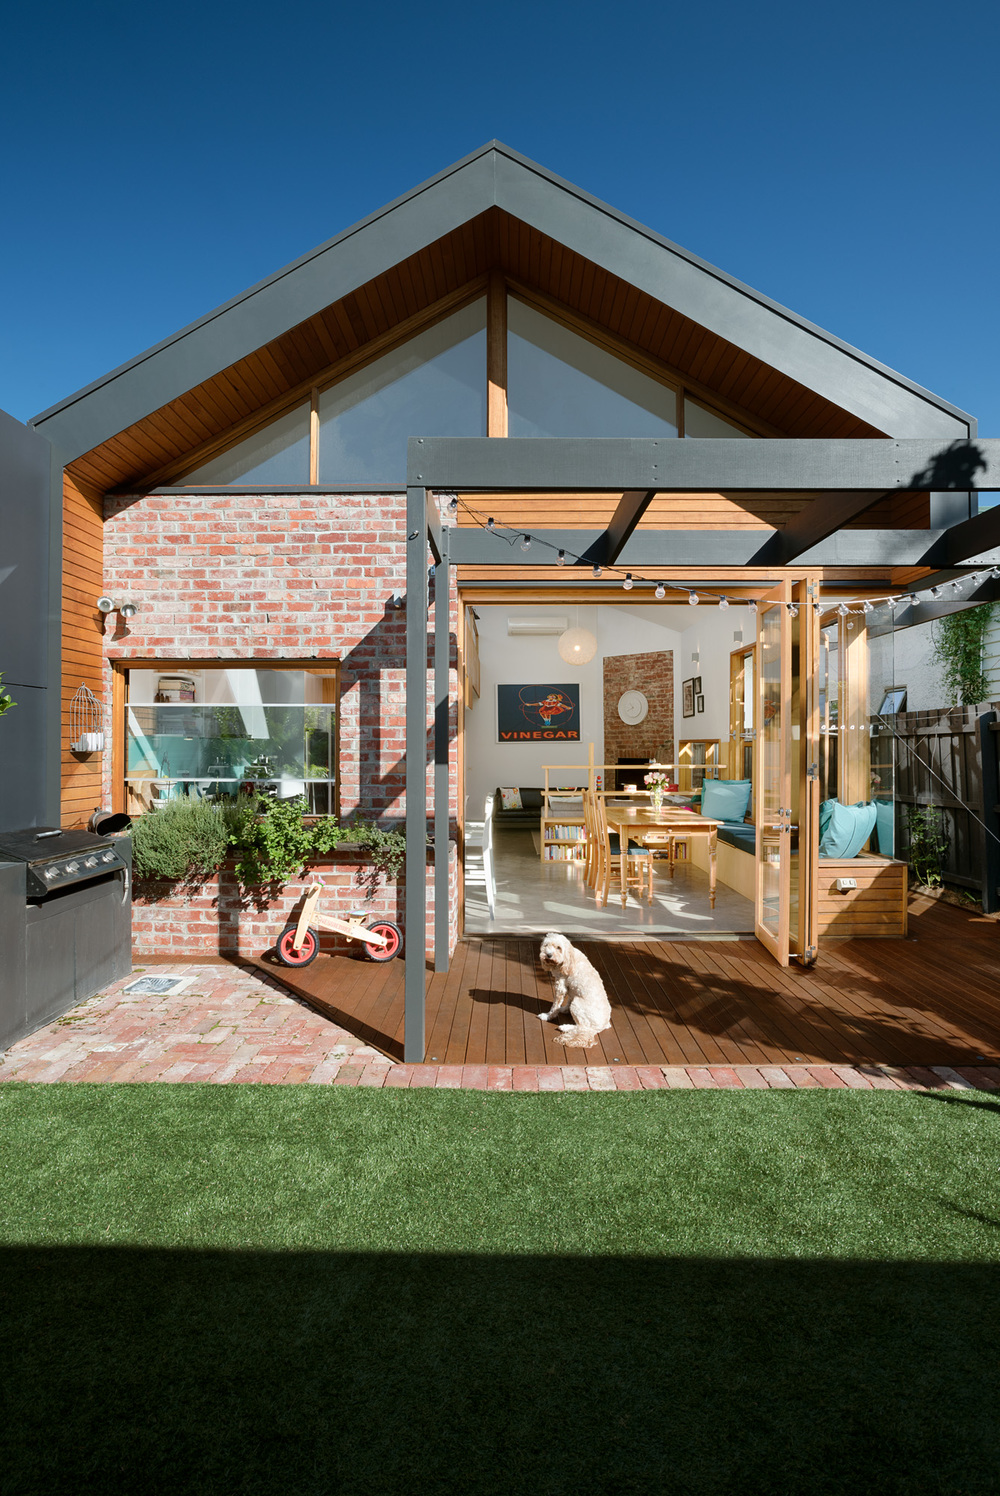 smart-home-green-sheep-collective-sustainable-architecture-706768d2-1.jpg